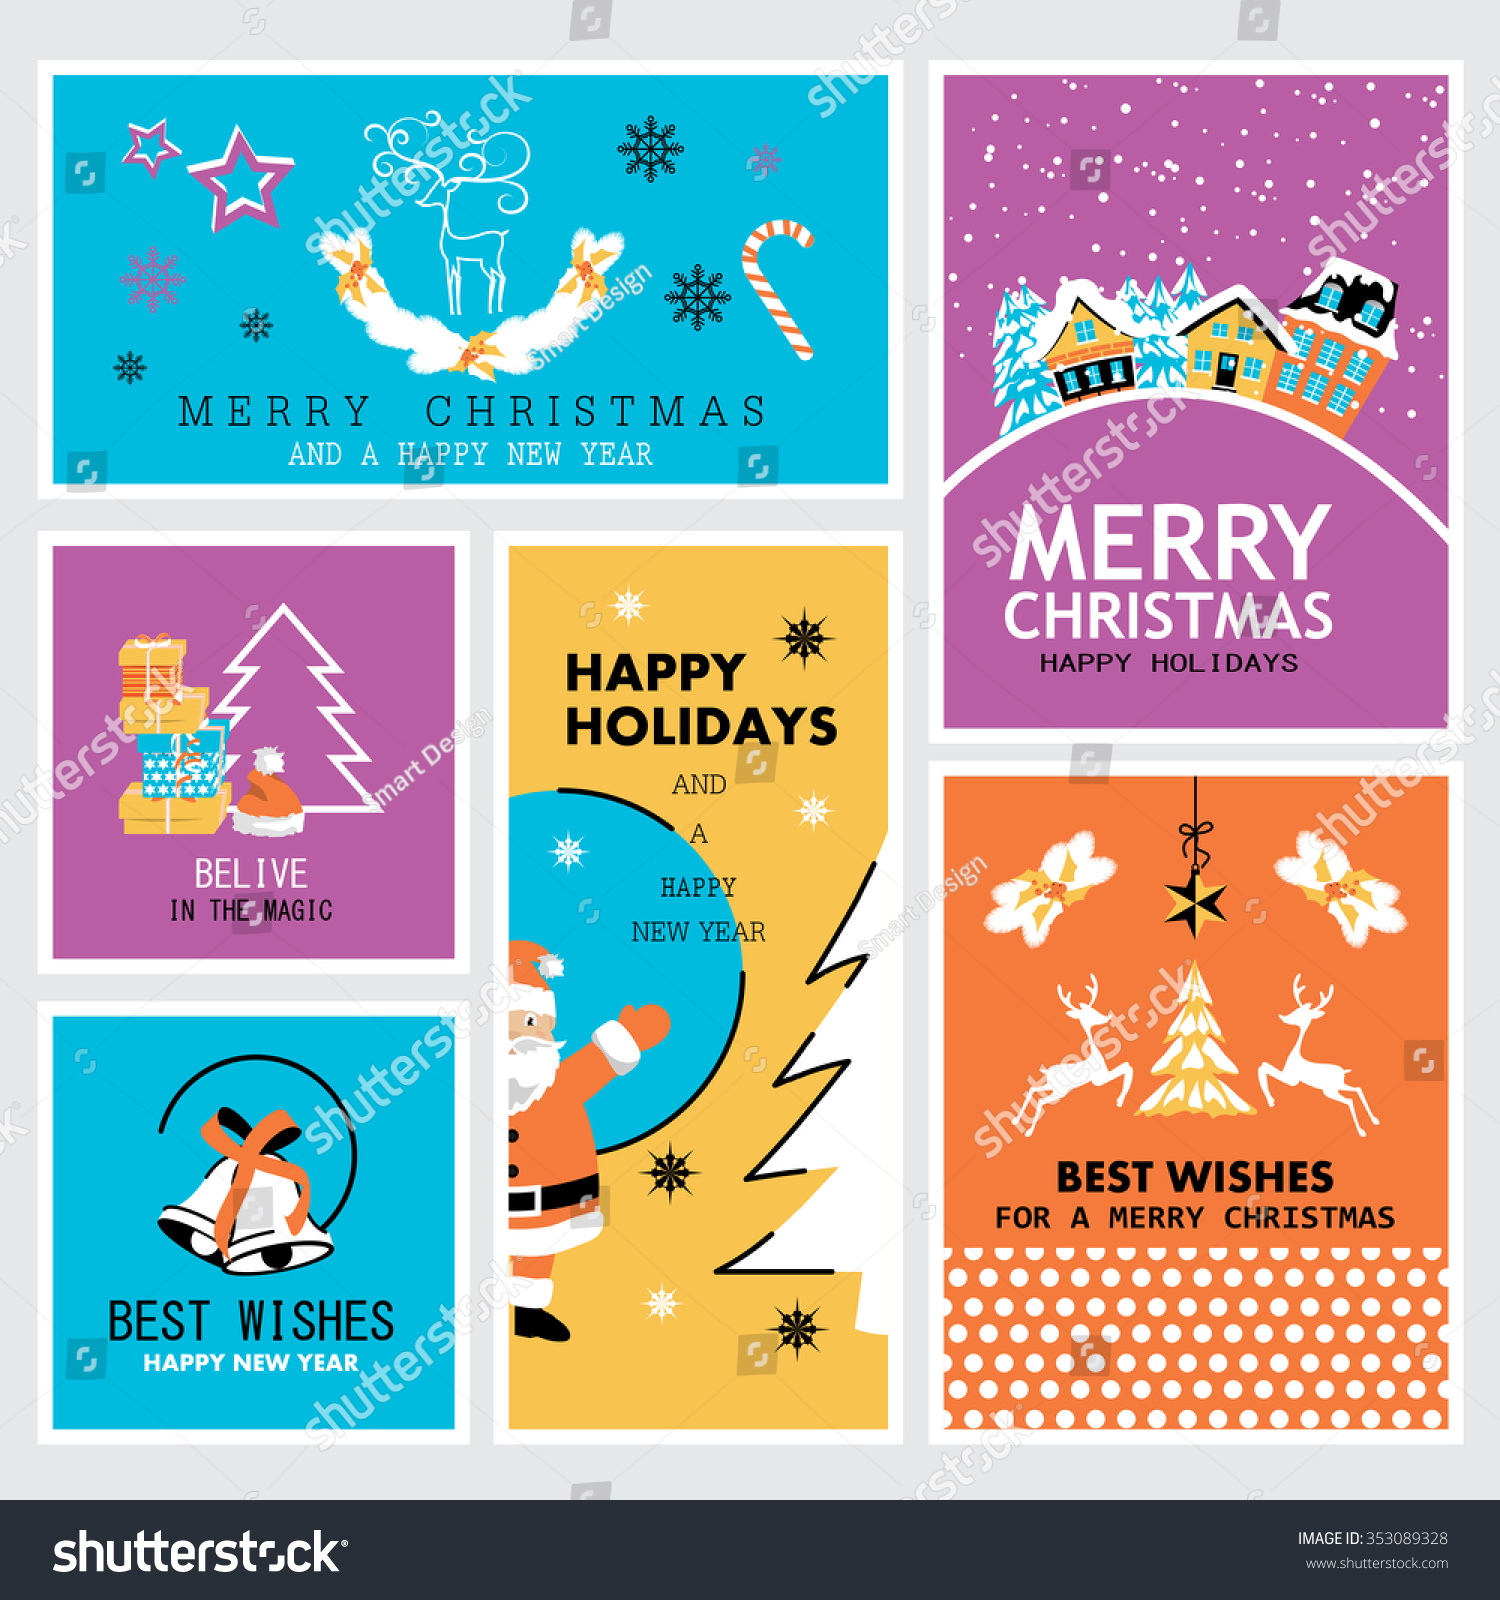 Christmas New Year Banners Set Vector Stock Vector (Royalty Free ...